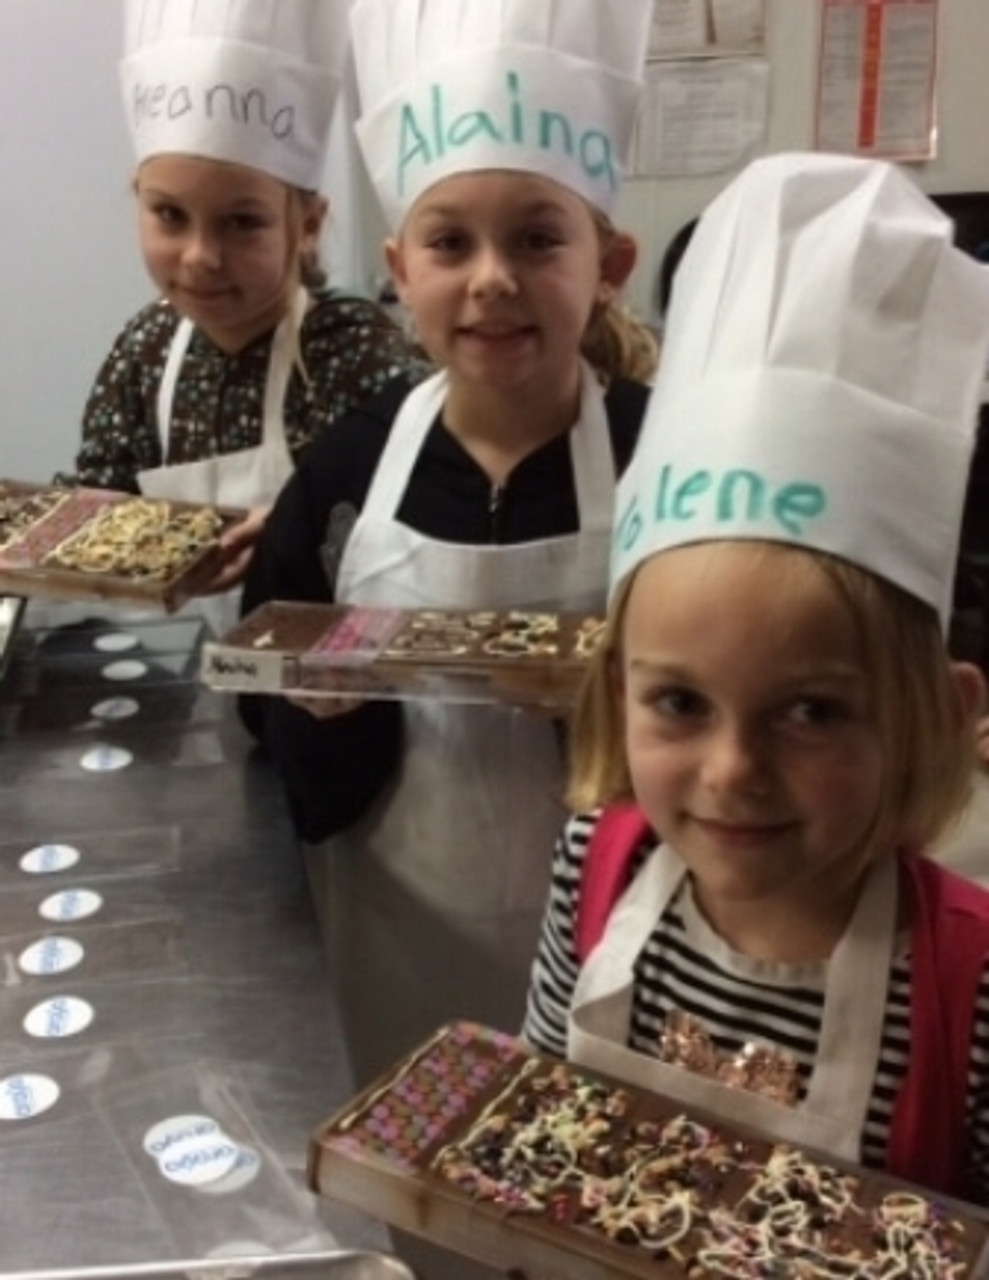 Chocolate Parties - Kids and Adults too!